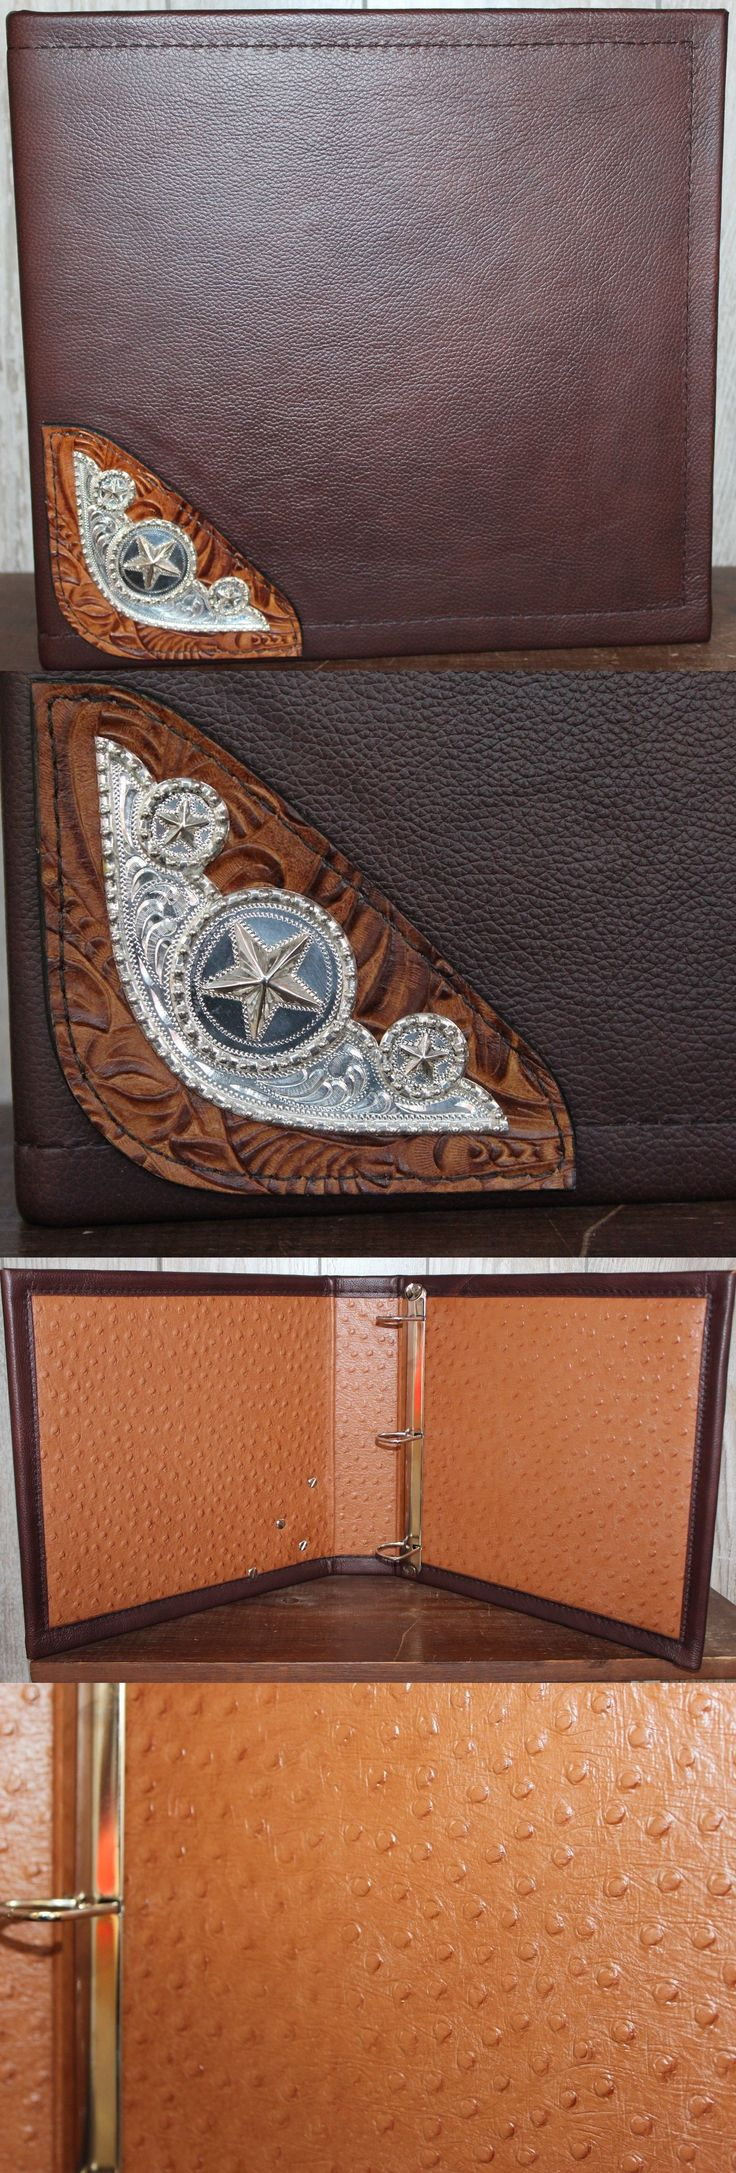 Conchos 159019: Berries And Stars Silver Saddle Corner Concho Chocolate Leather 3 Ring Binder -> BUY IT NOW ONLY: $71.95 on eBay!